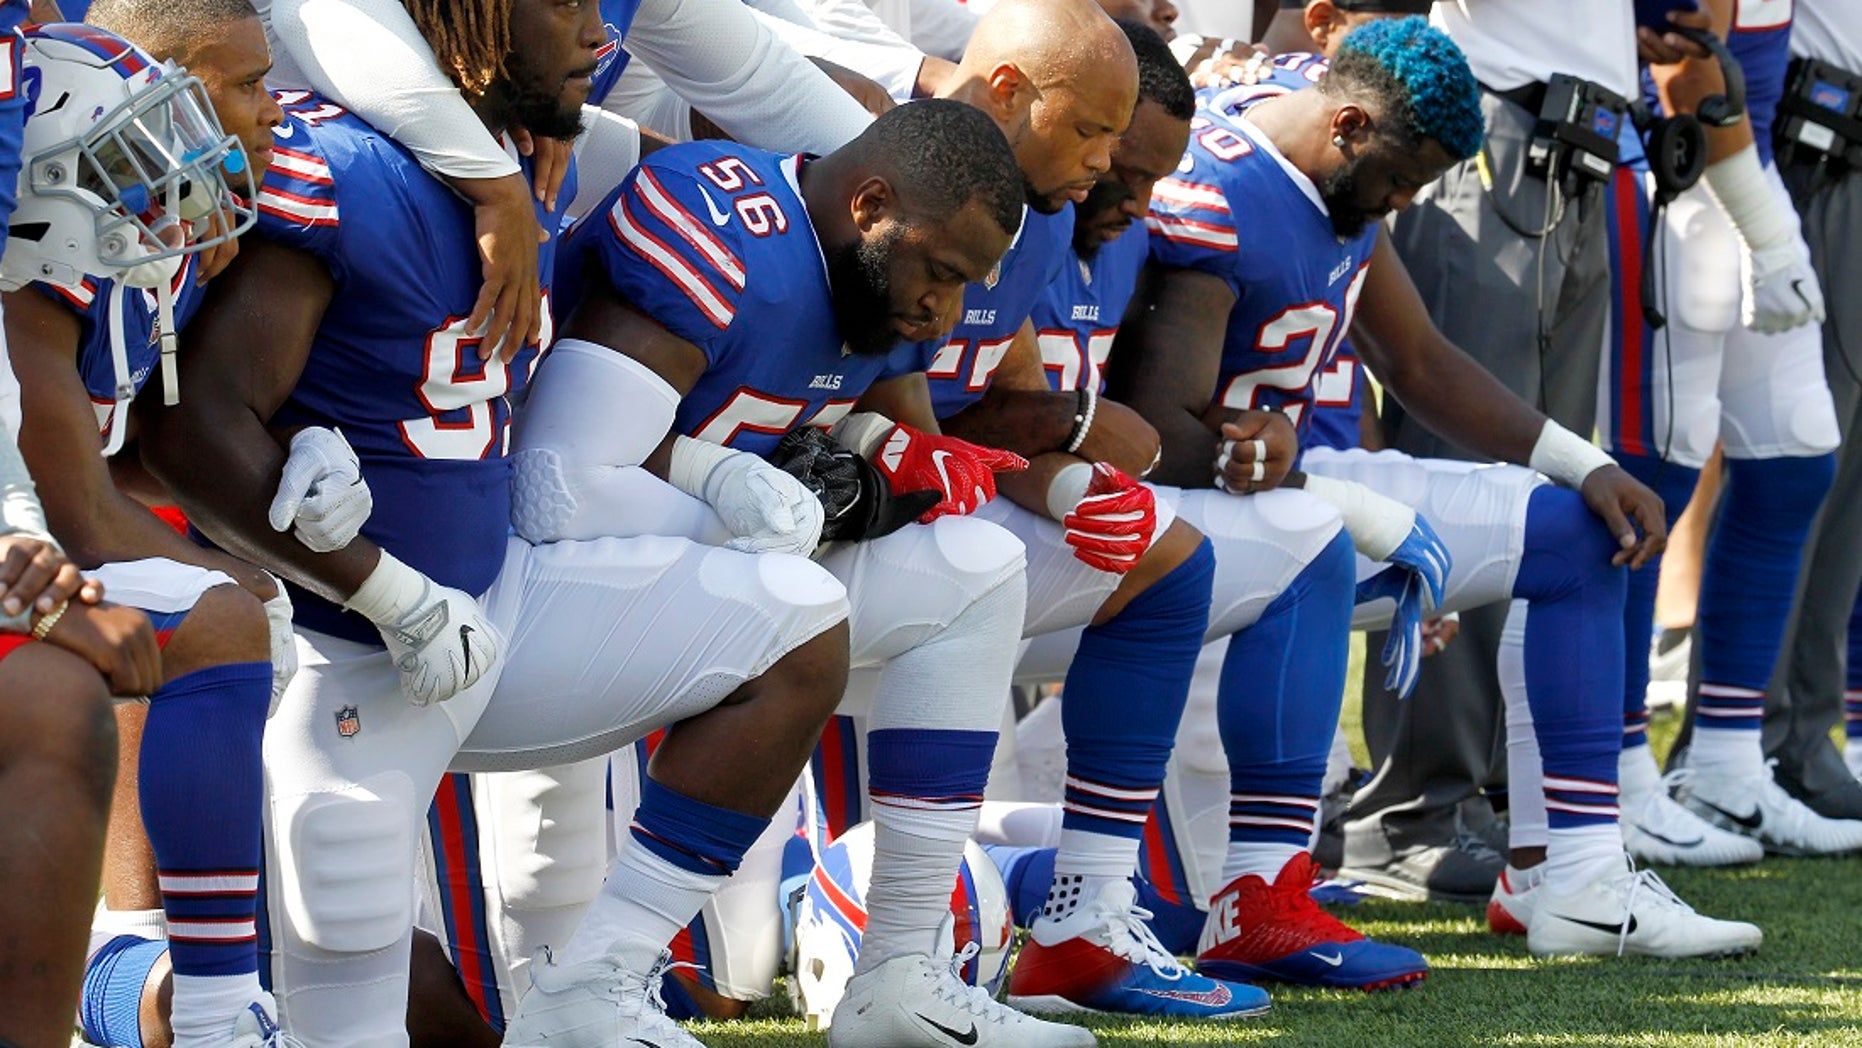 Buffalo Bills players kneel during the national anthem before a game versus the Denver Broncos.